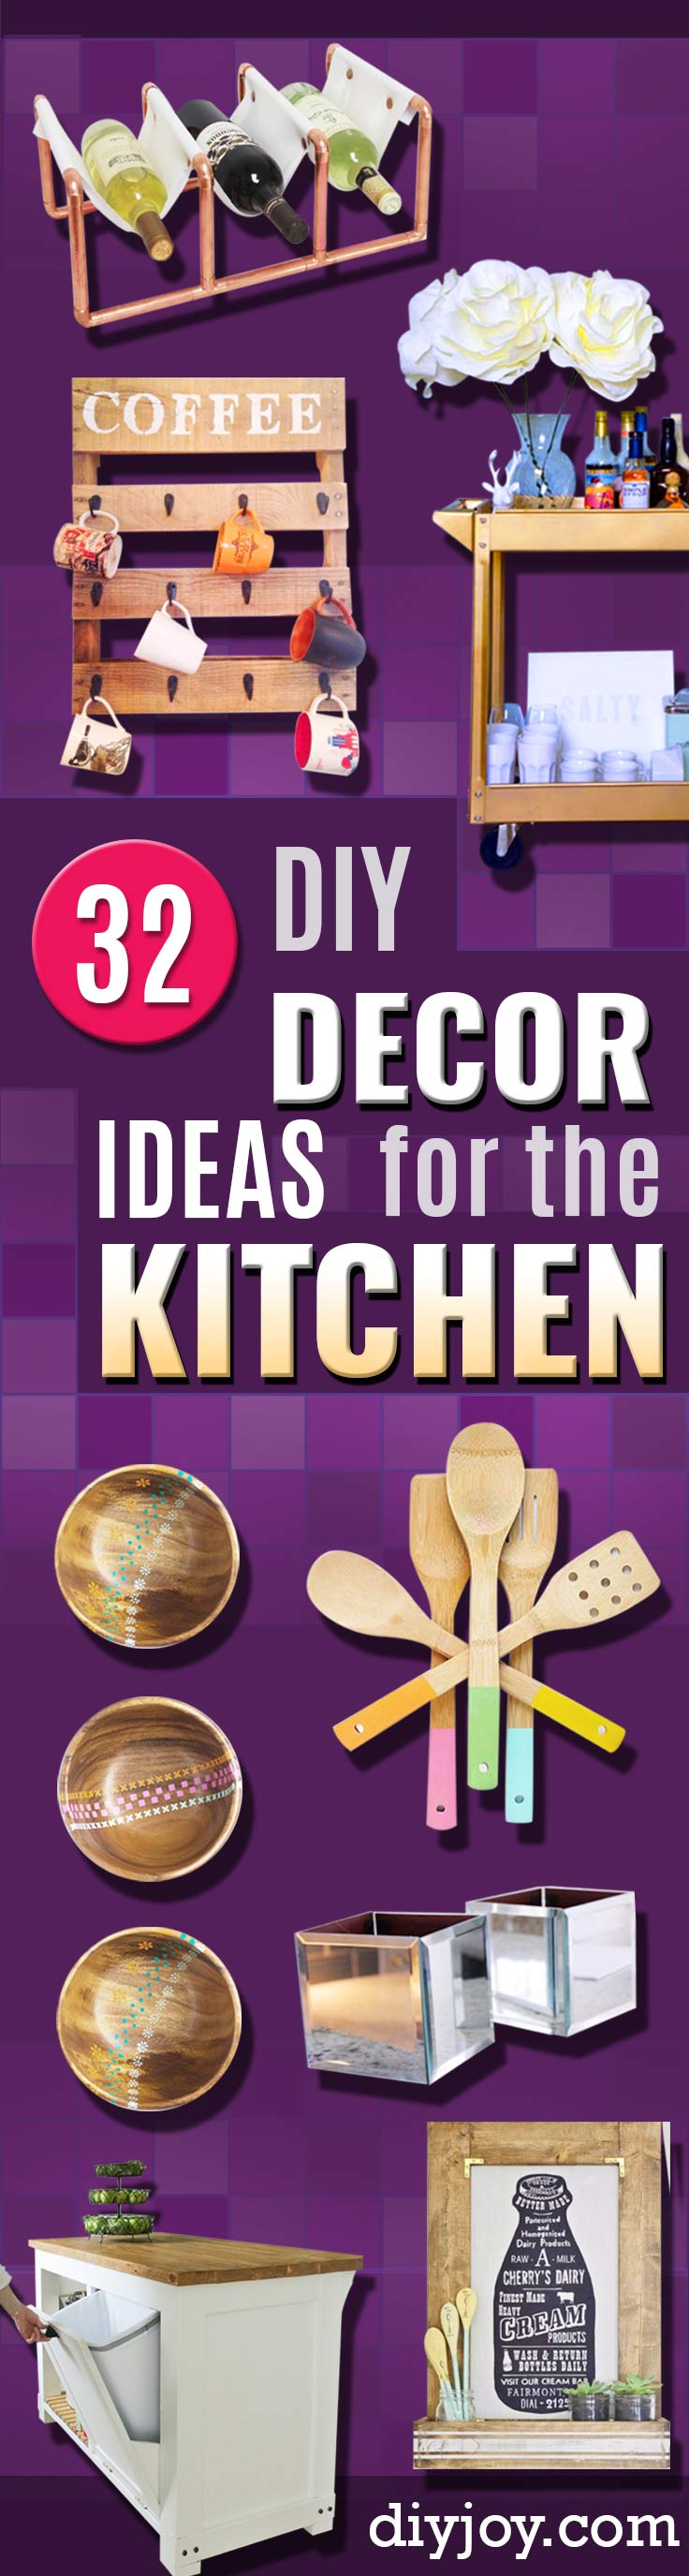 32 Creative DIY Decor Ideas for Your Kitchen DIY Joy